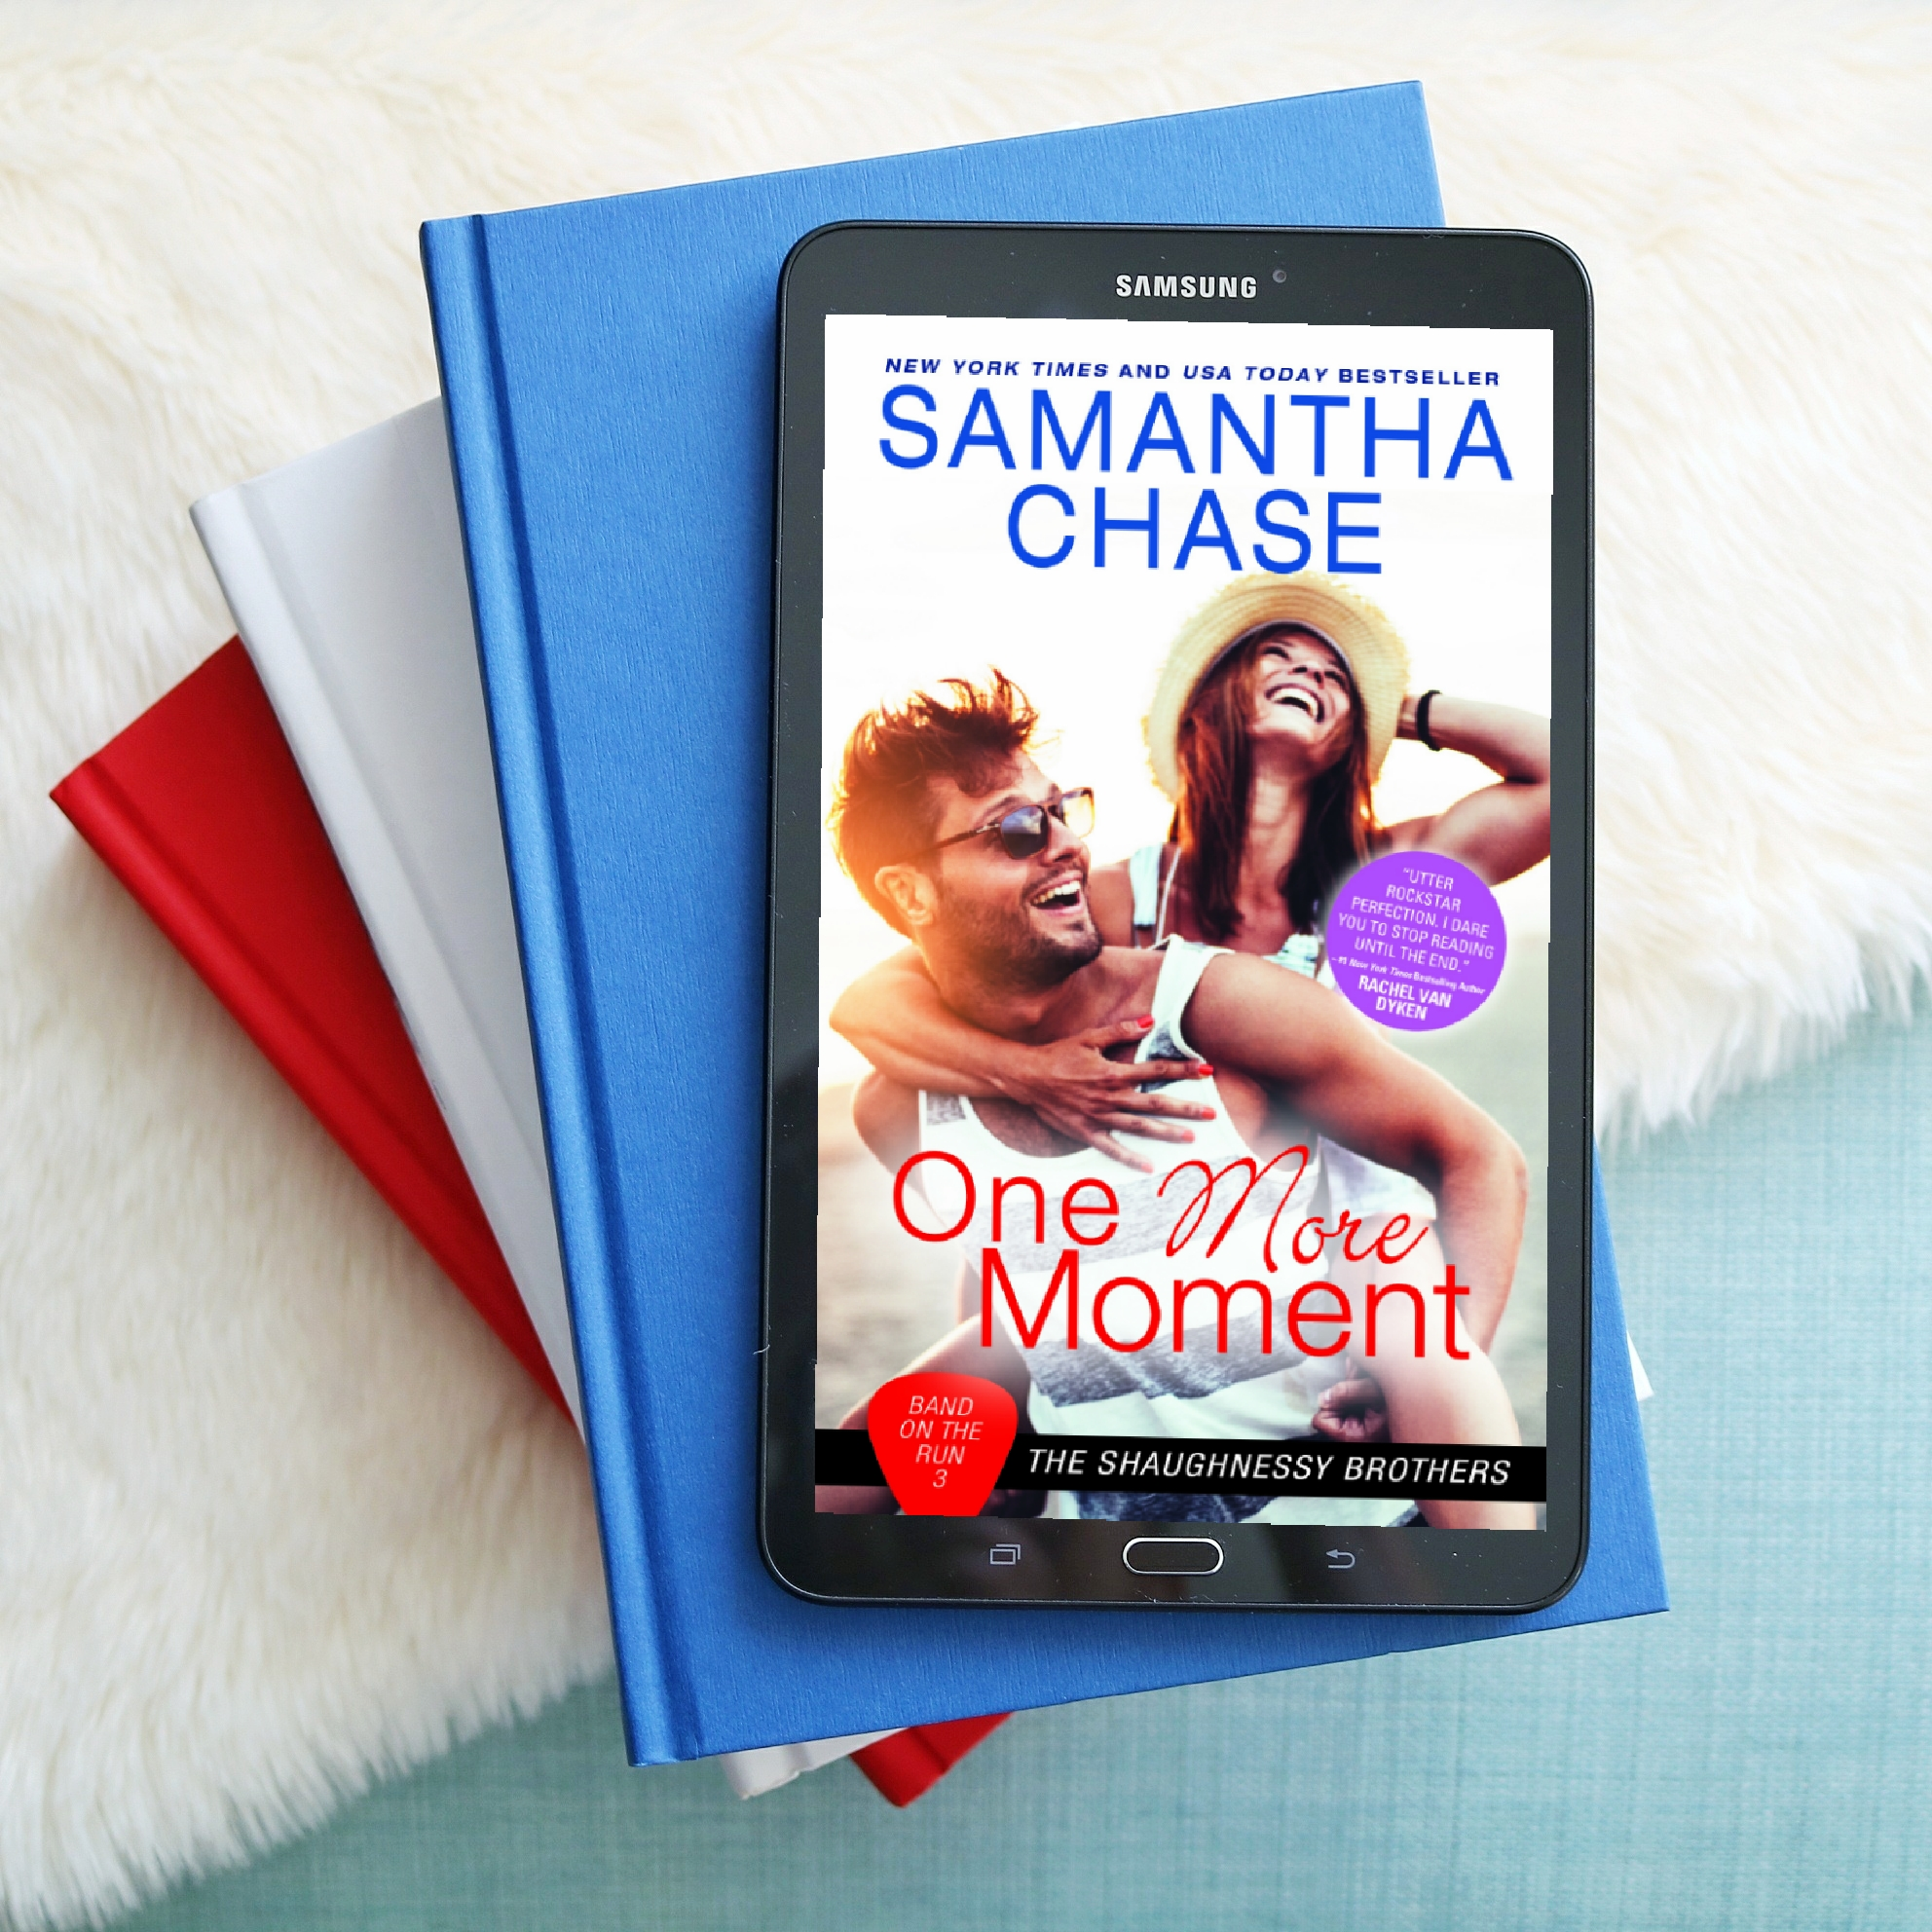 BLOG TOUR: One More Moment (Band on the Run #3) by Samantha Chase